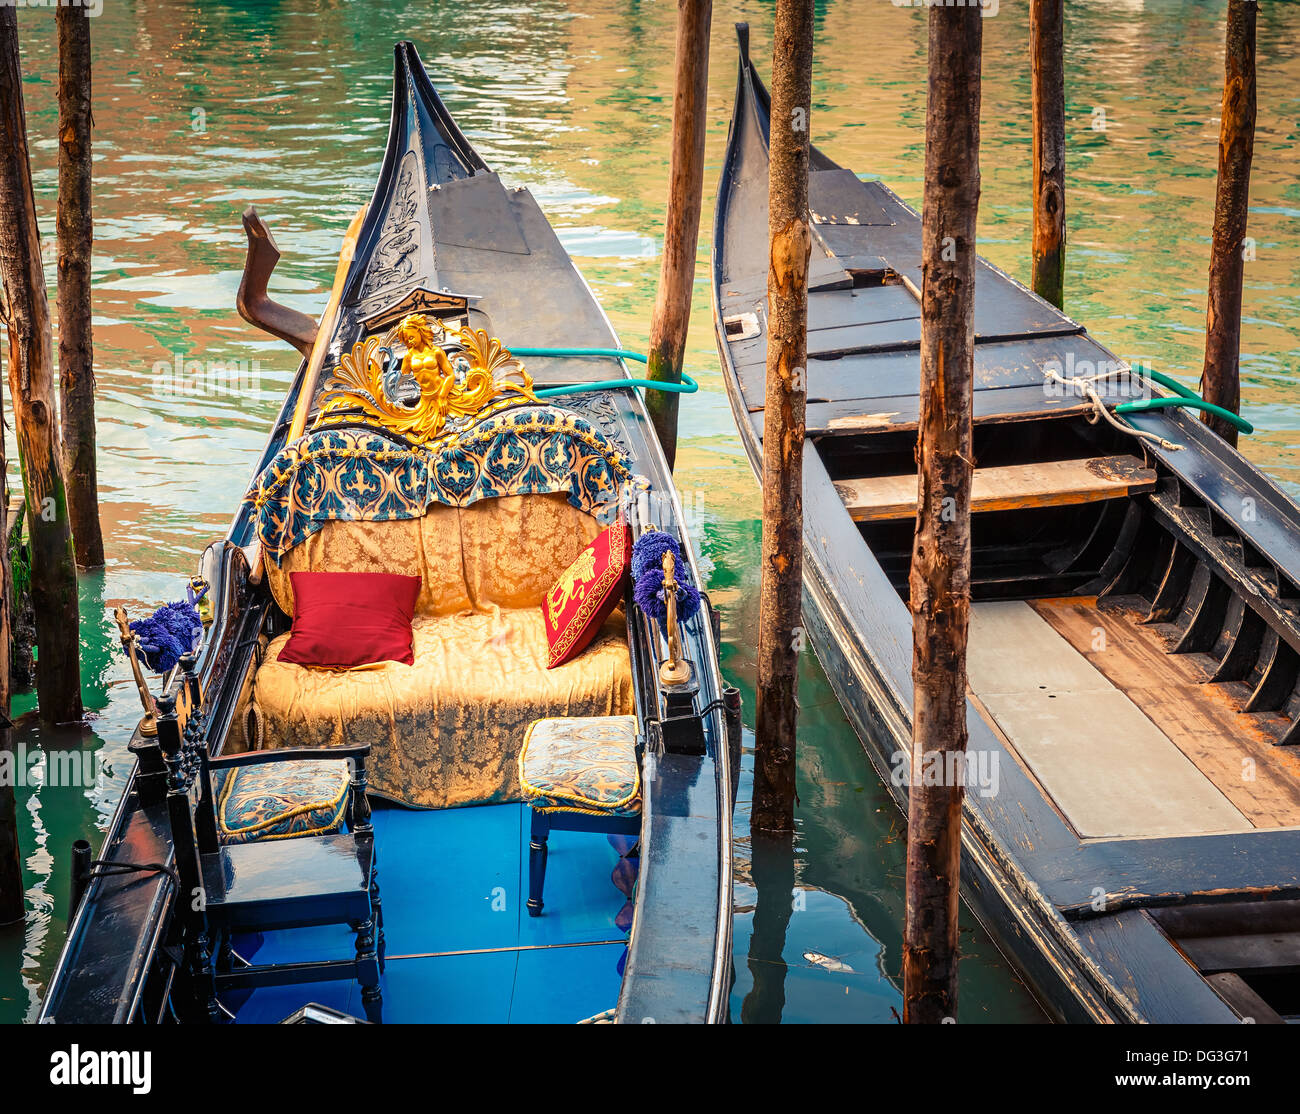 Gondolas on canal in Venice - Stock Image